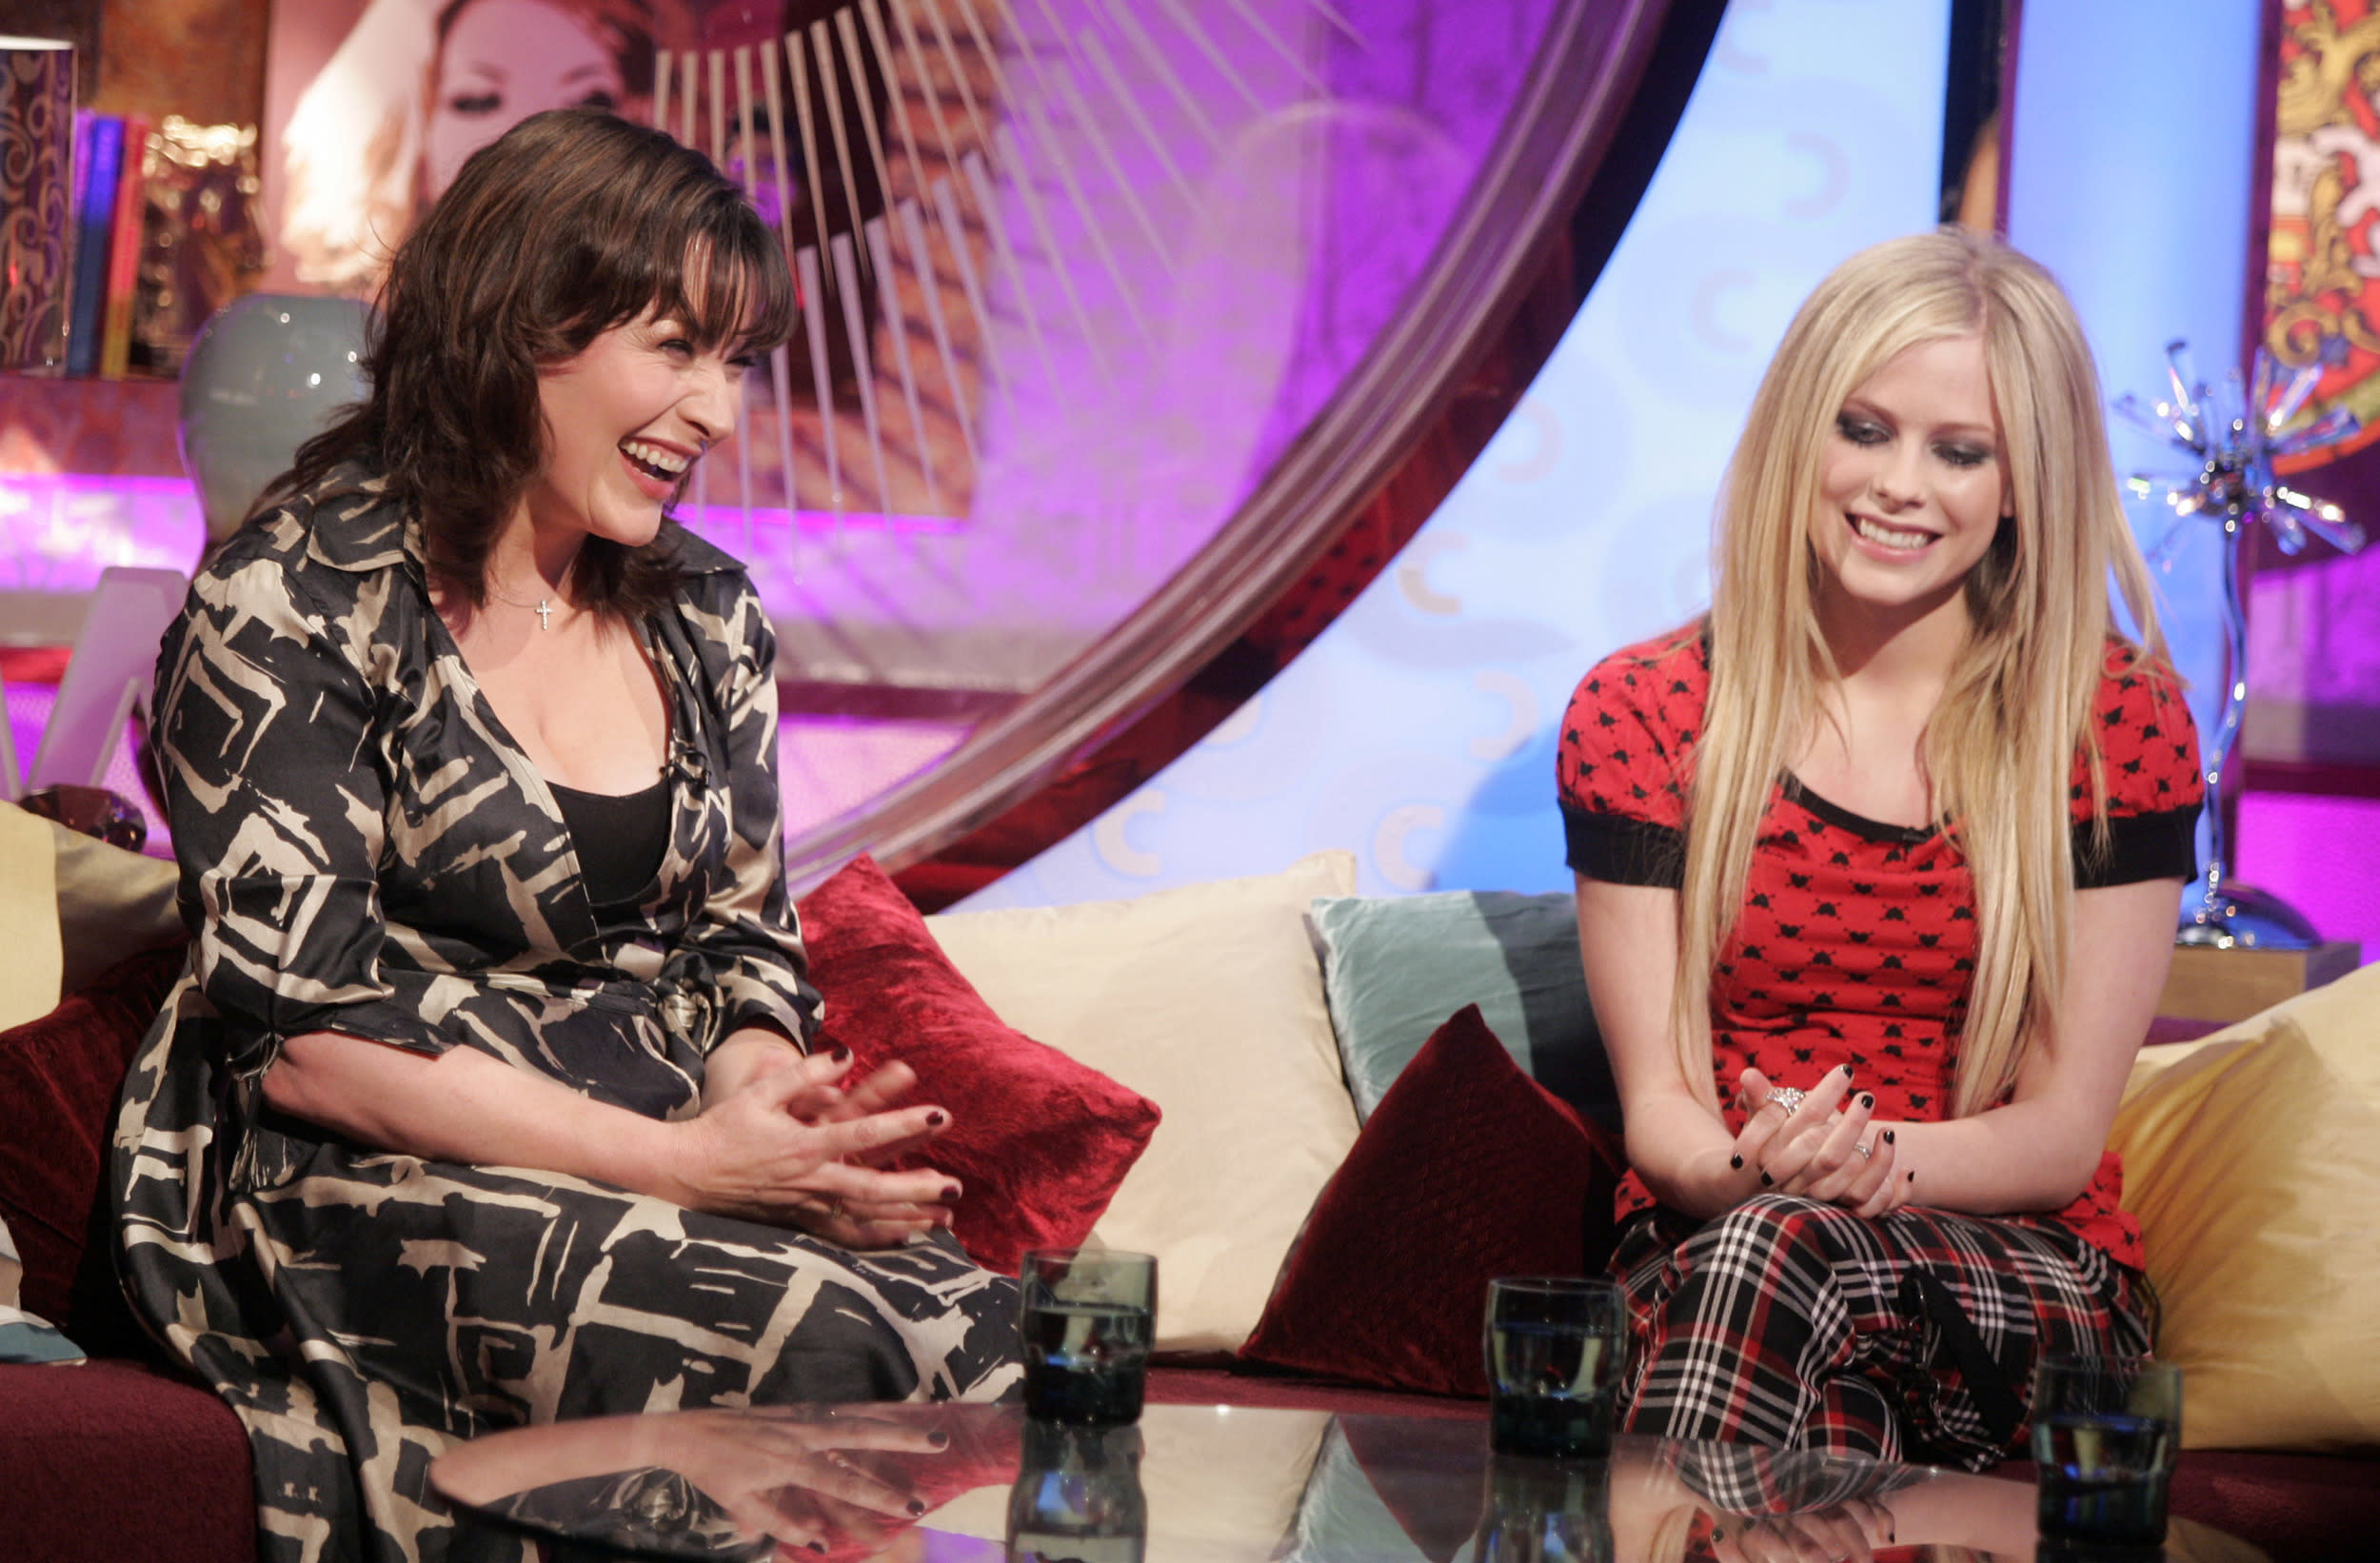 Lorraine Kelly and Avril Lavigne pictured during recording for the Charlotte Church Show series 2, Channel 4, on March 21, 2007. Transmission date: Friday March 23, 2007. 22.00 hours, Channel 4.